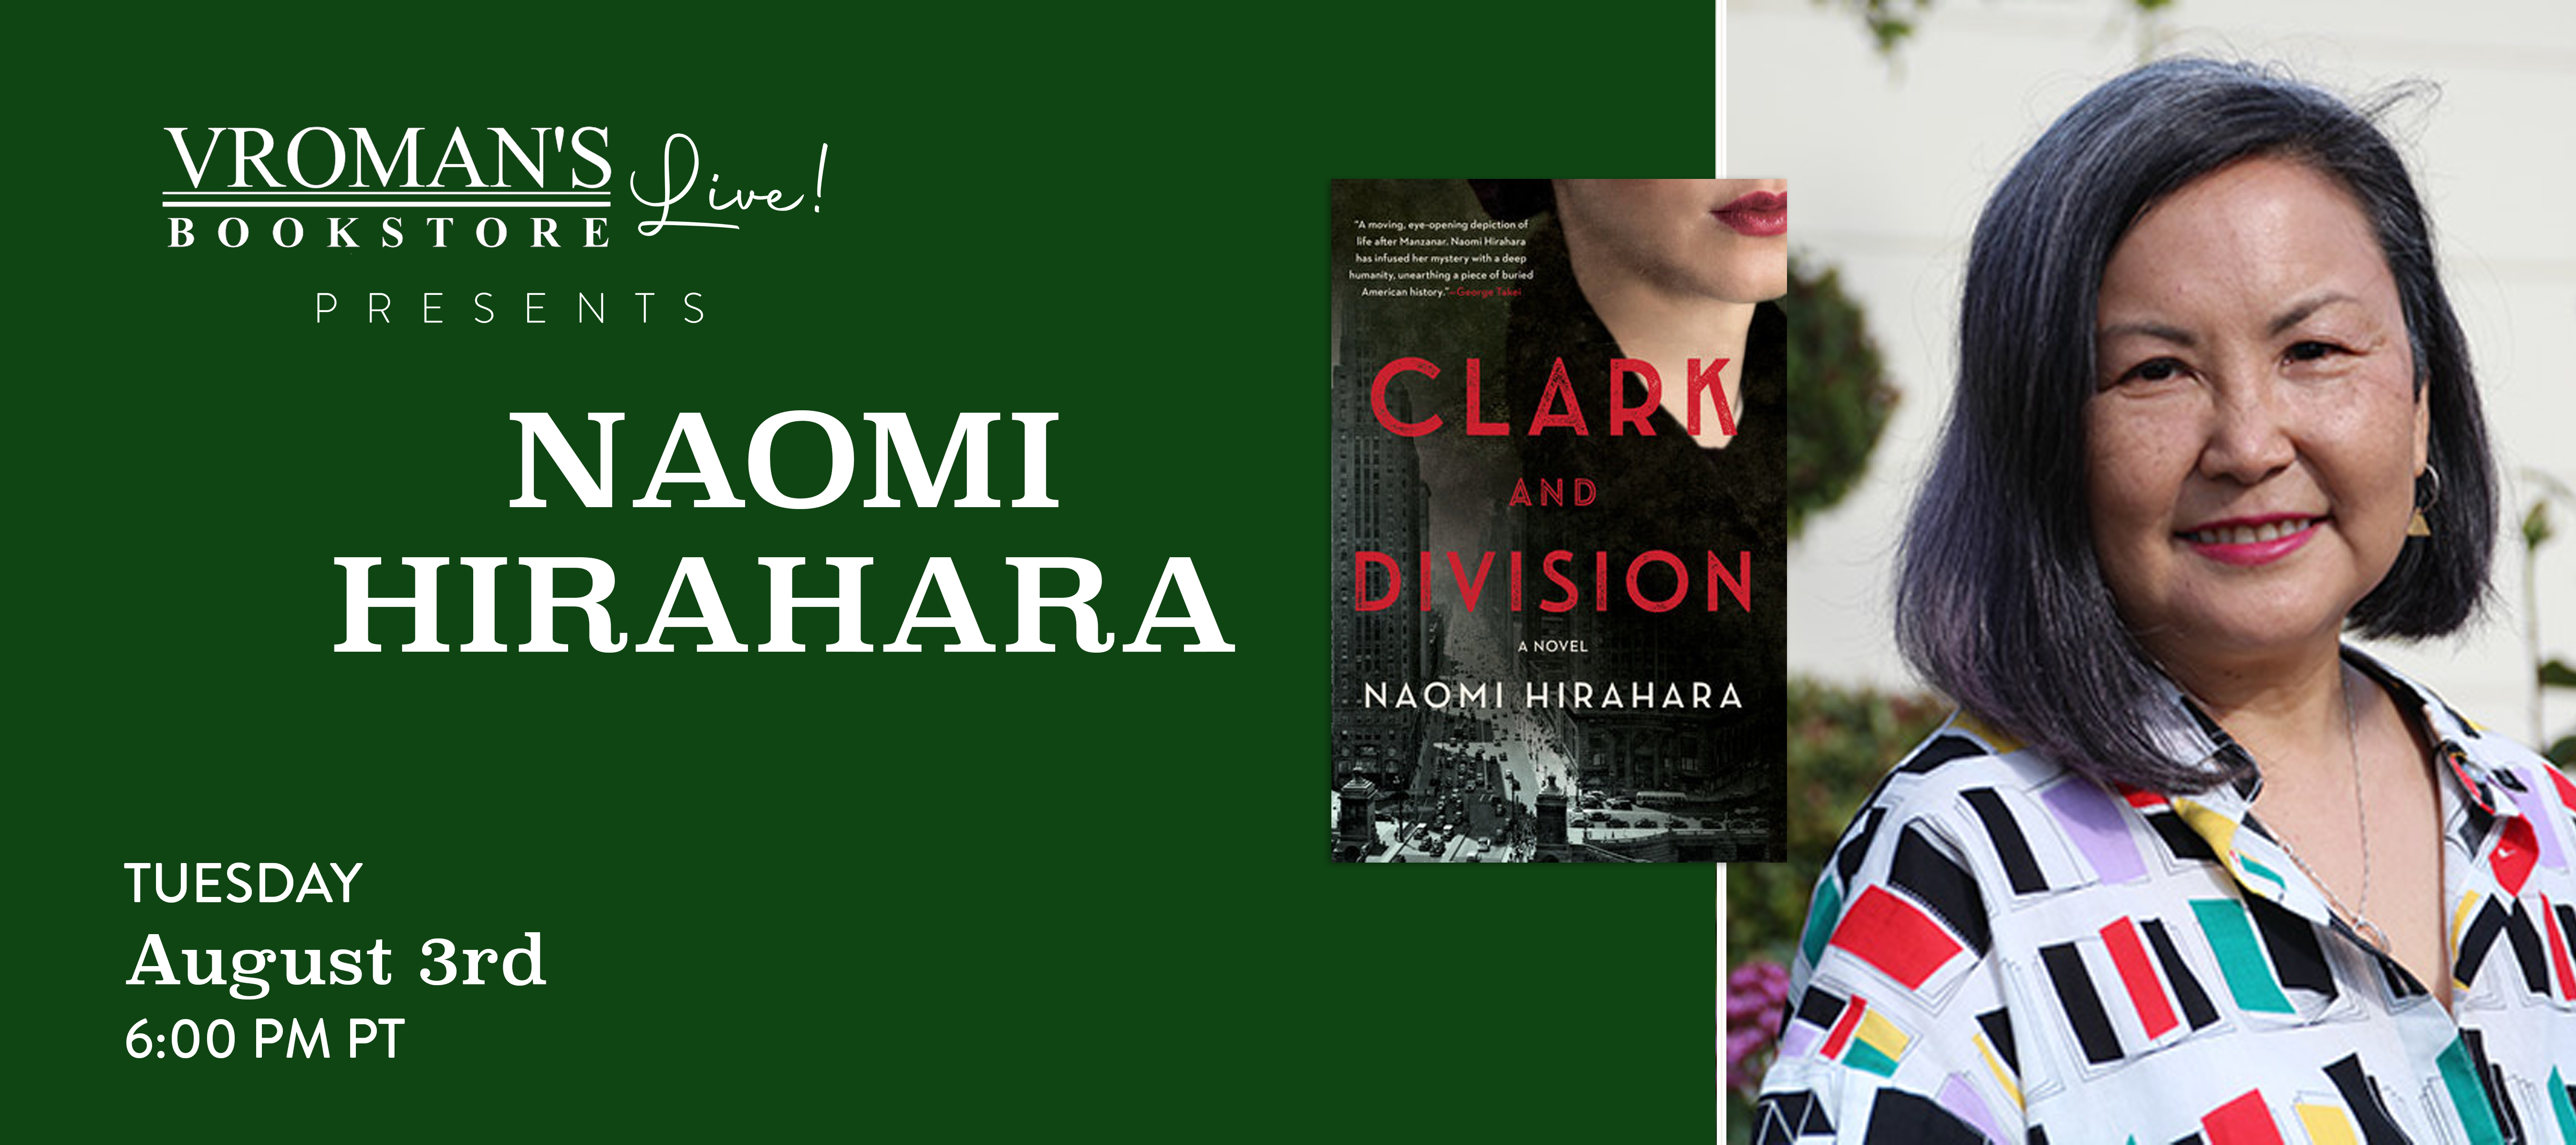 Image of Naomi HIrahara and her new book, Clark and Division